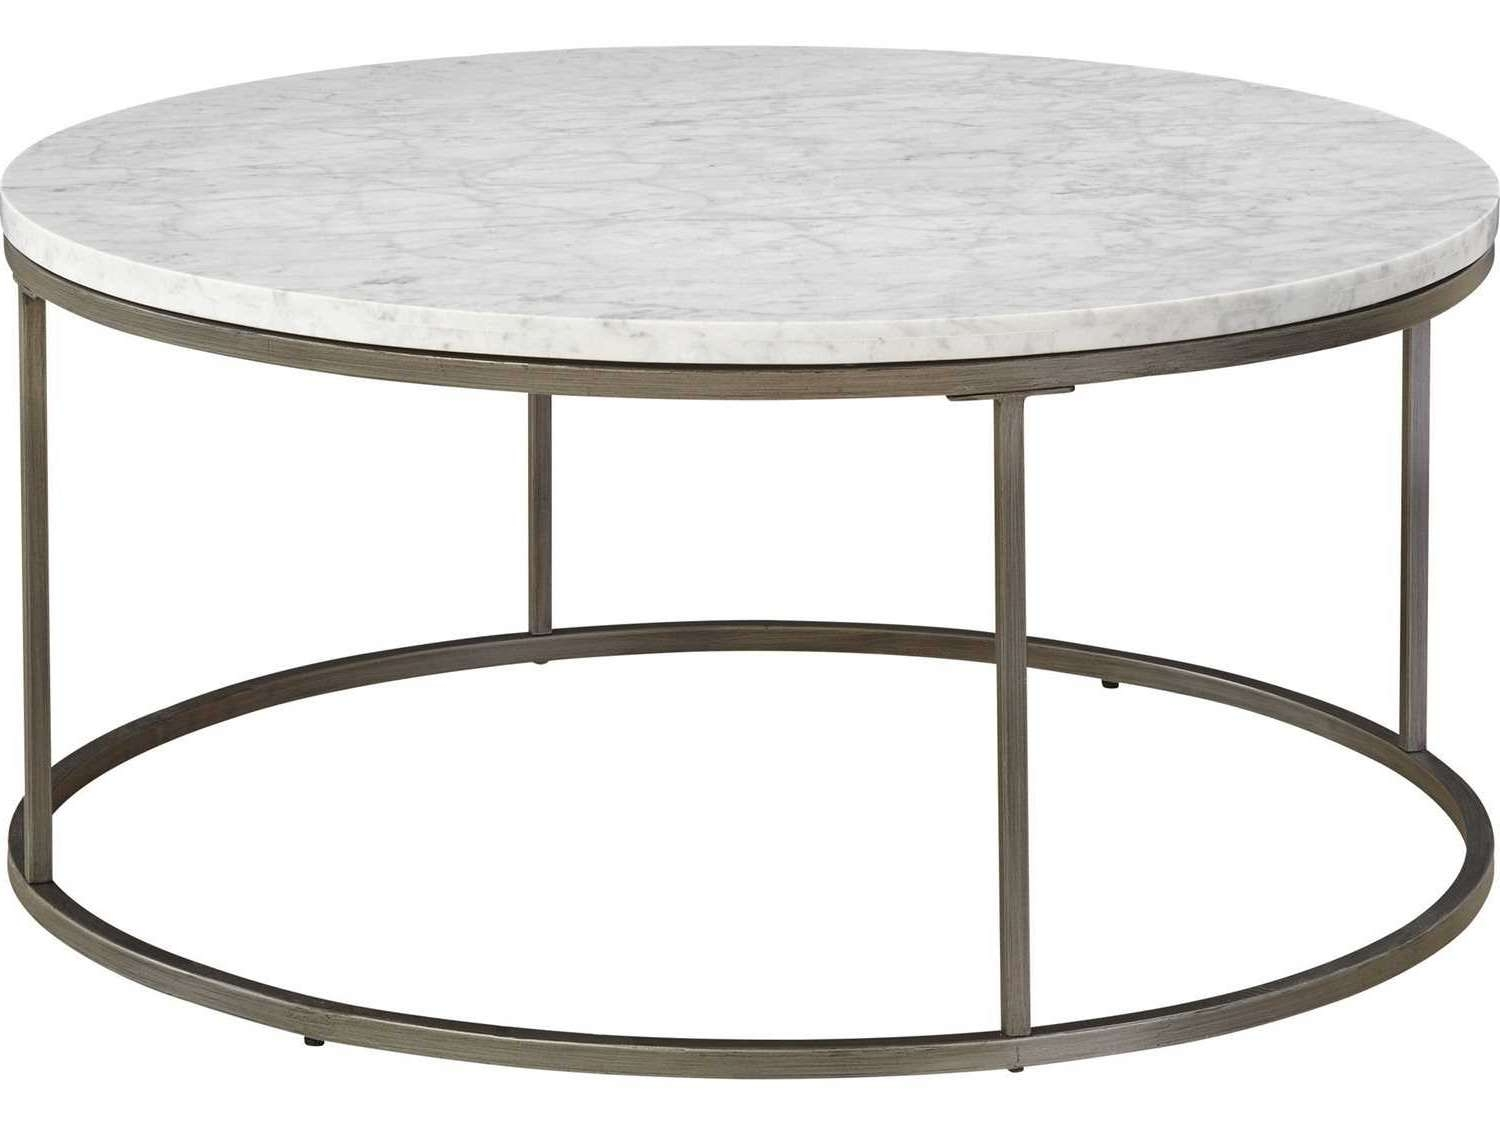 Casana Alana White Marble & Natural Steel 38'' Round Coffee Table In Widely Used Marble Round Coffee Tables (View 18 of 20)